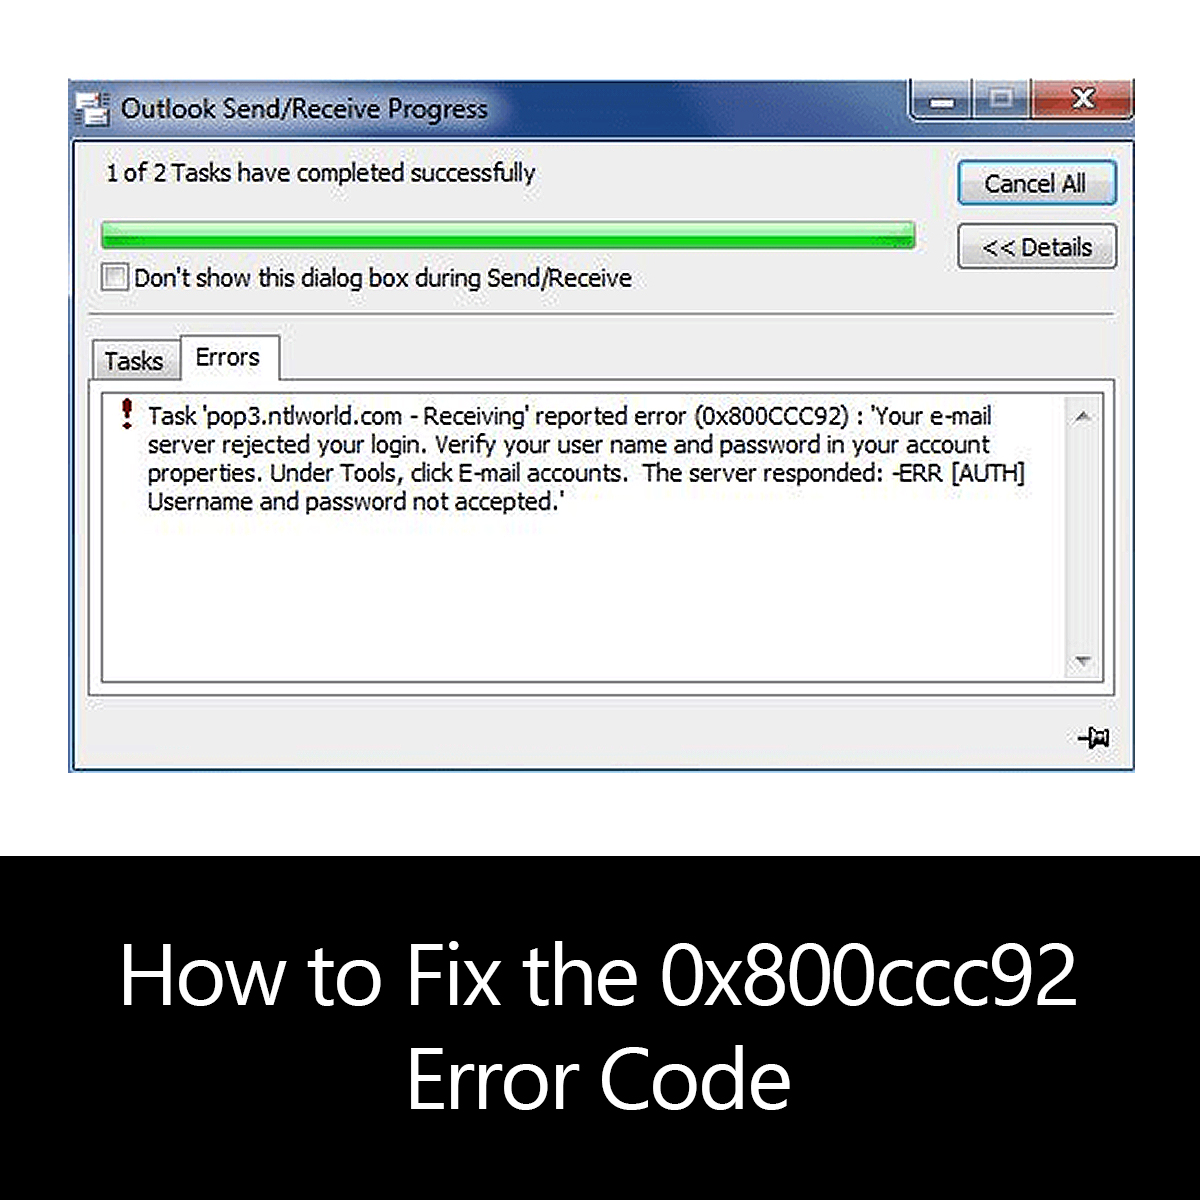 How to Fix the 0x800ccc92 Error Code